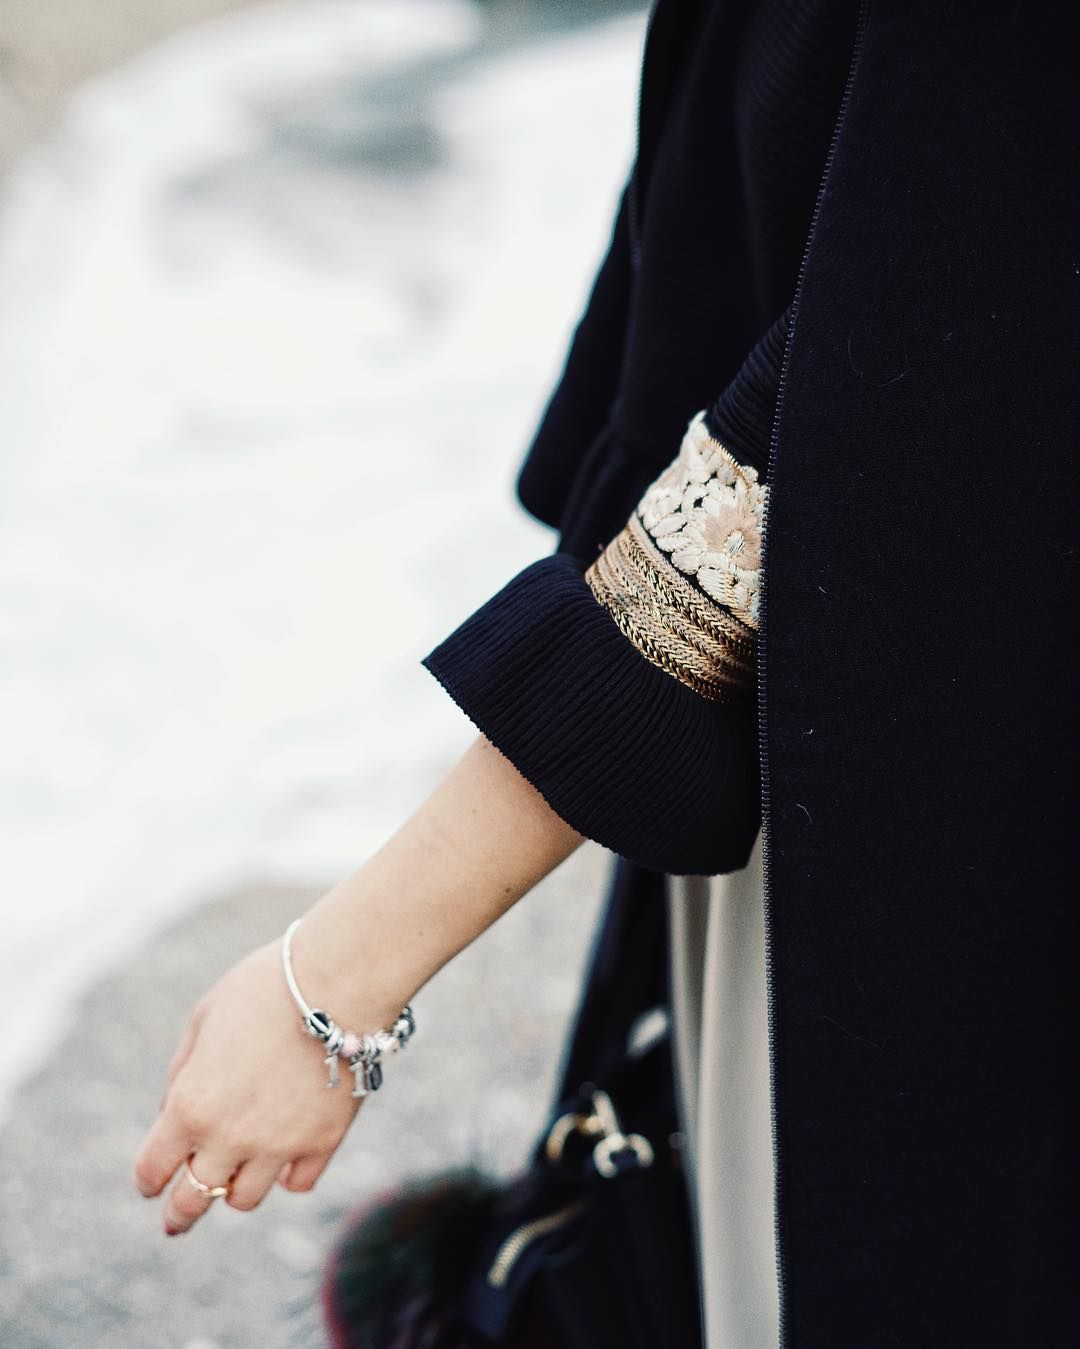 s n o w  #ootd #gold #details